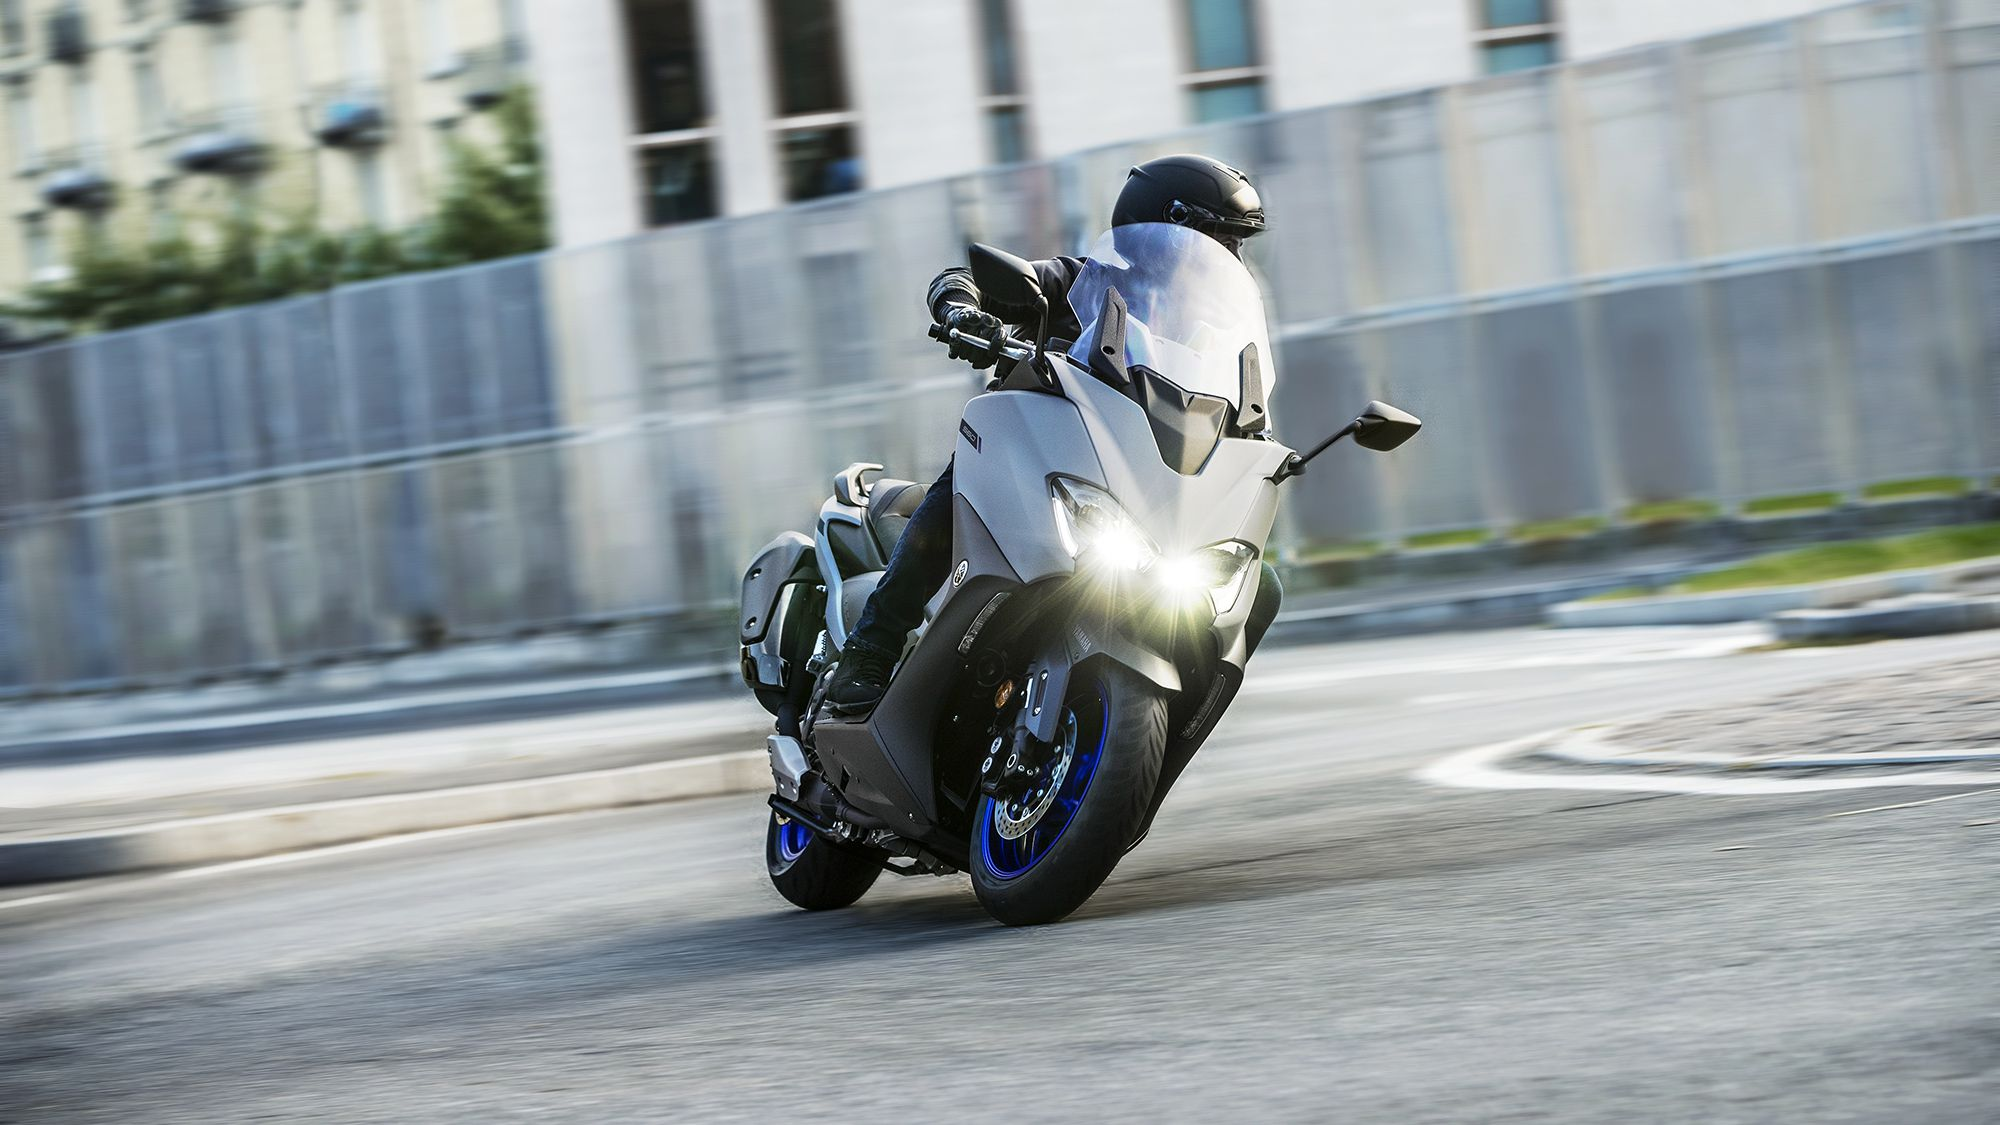 Yamaha keeps weight low in the 560 for optimal handling characteristics.